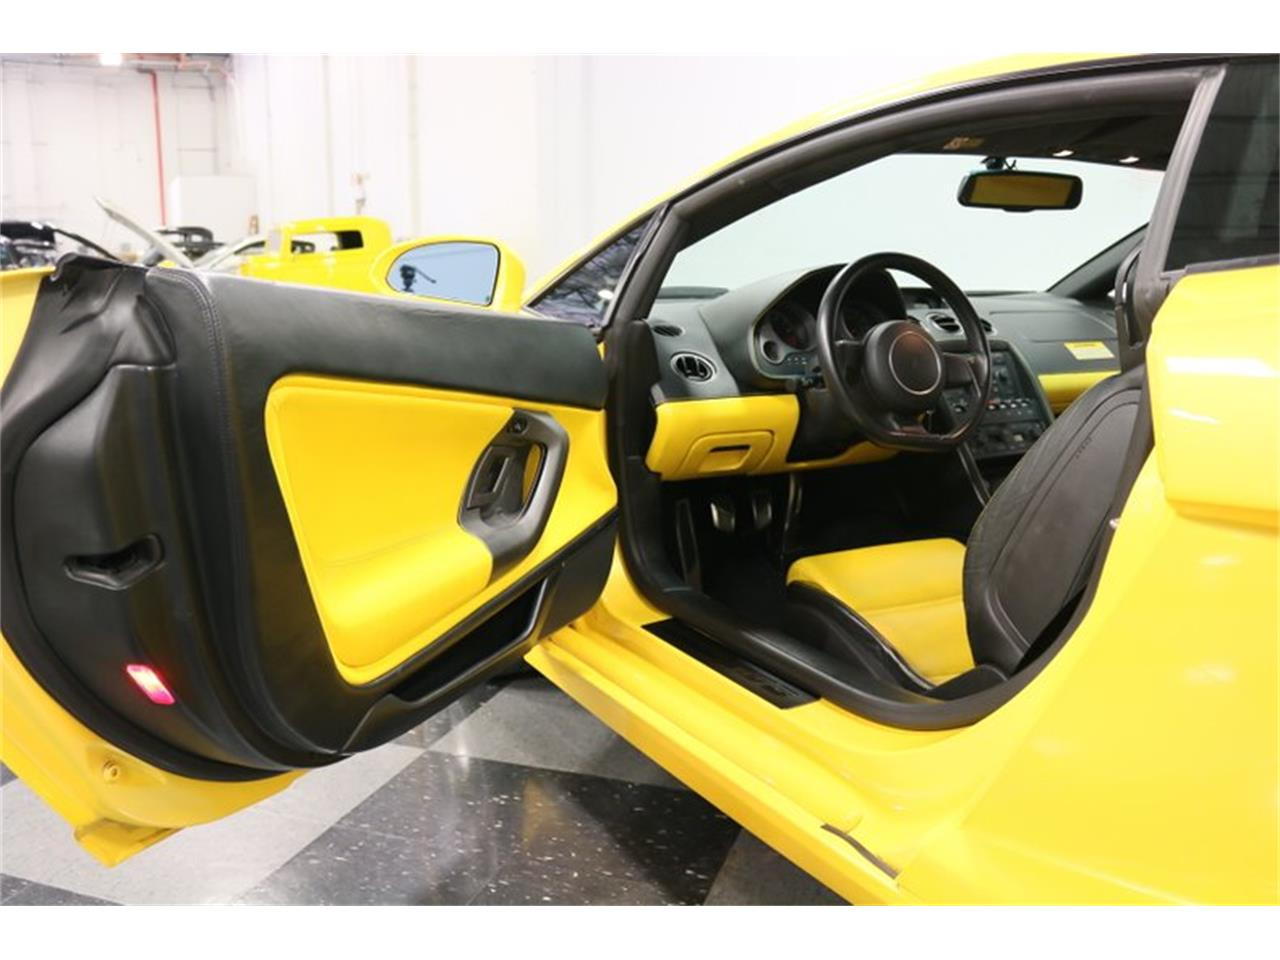 Large Picture of '04 Gallardo - $99,995.00 Offered by Streetside Classics - Dallas / Fort Worth - PWGV